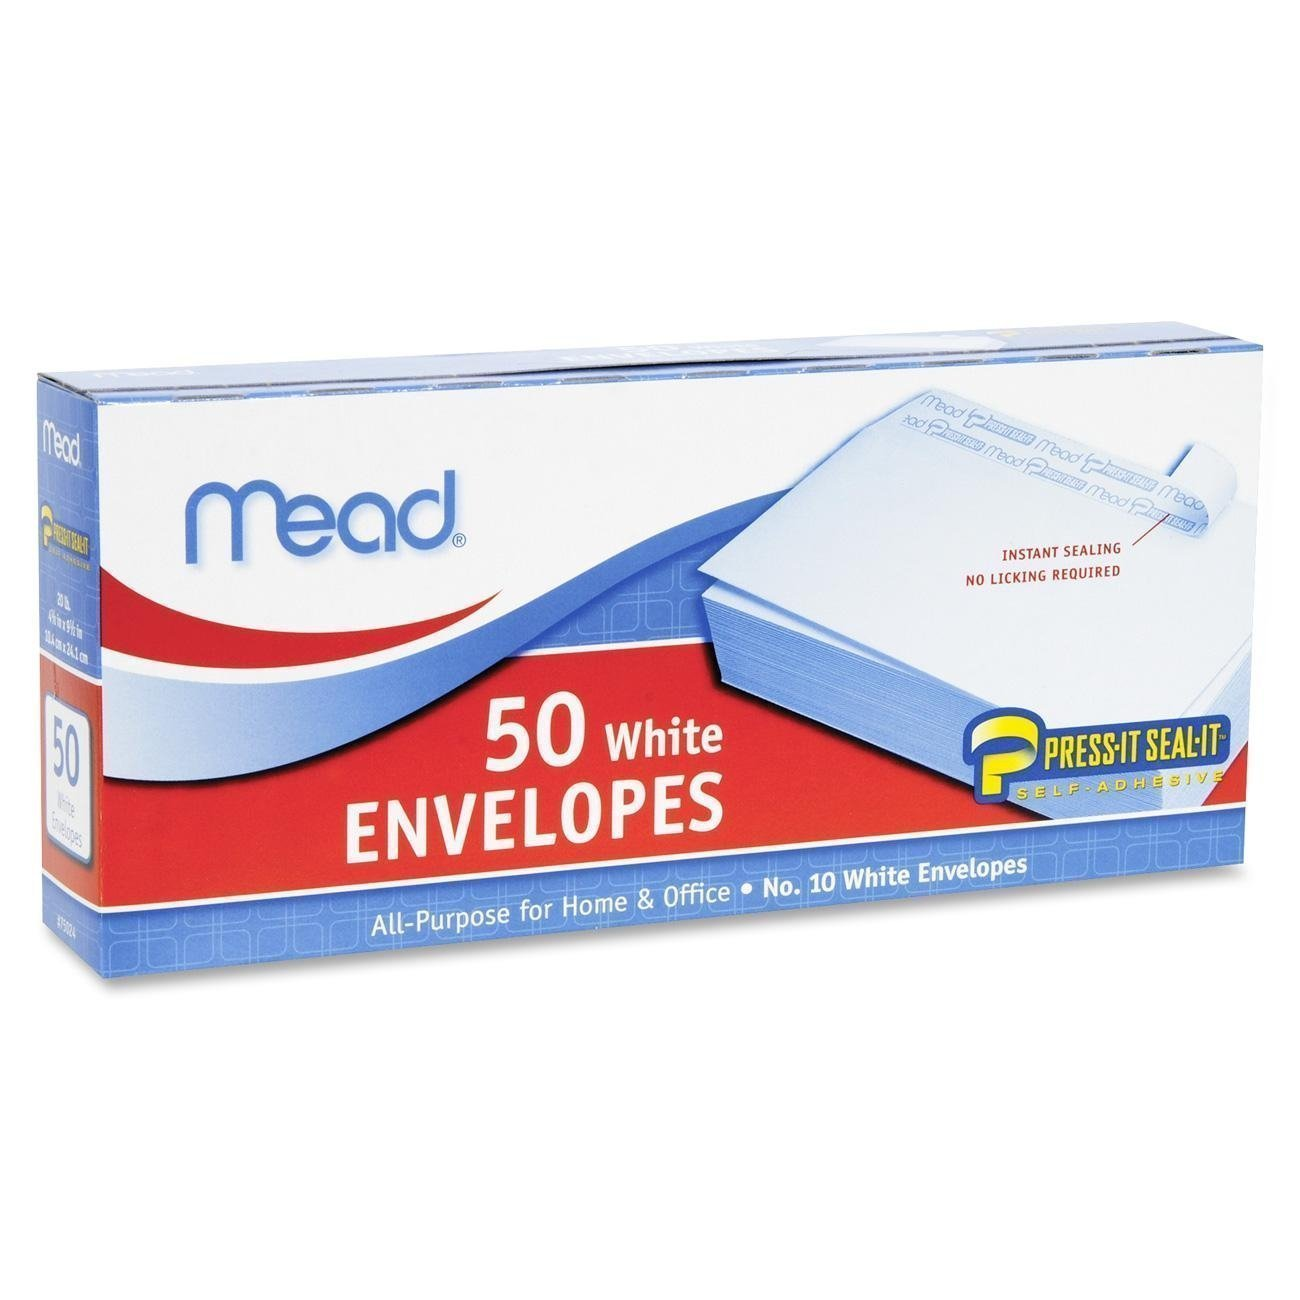 12 Pack of Mead Press-It Seal-It #10 White Envelopes, 50 Count (75024) = to 600 Envelopes by Mead